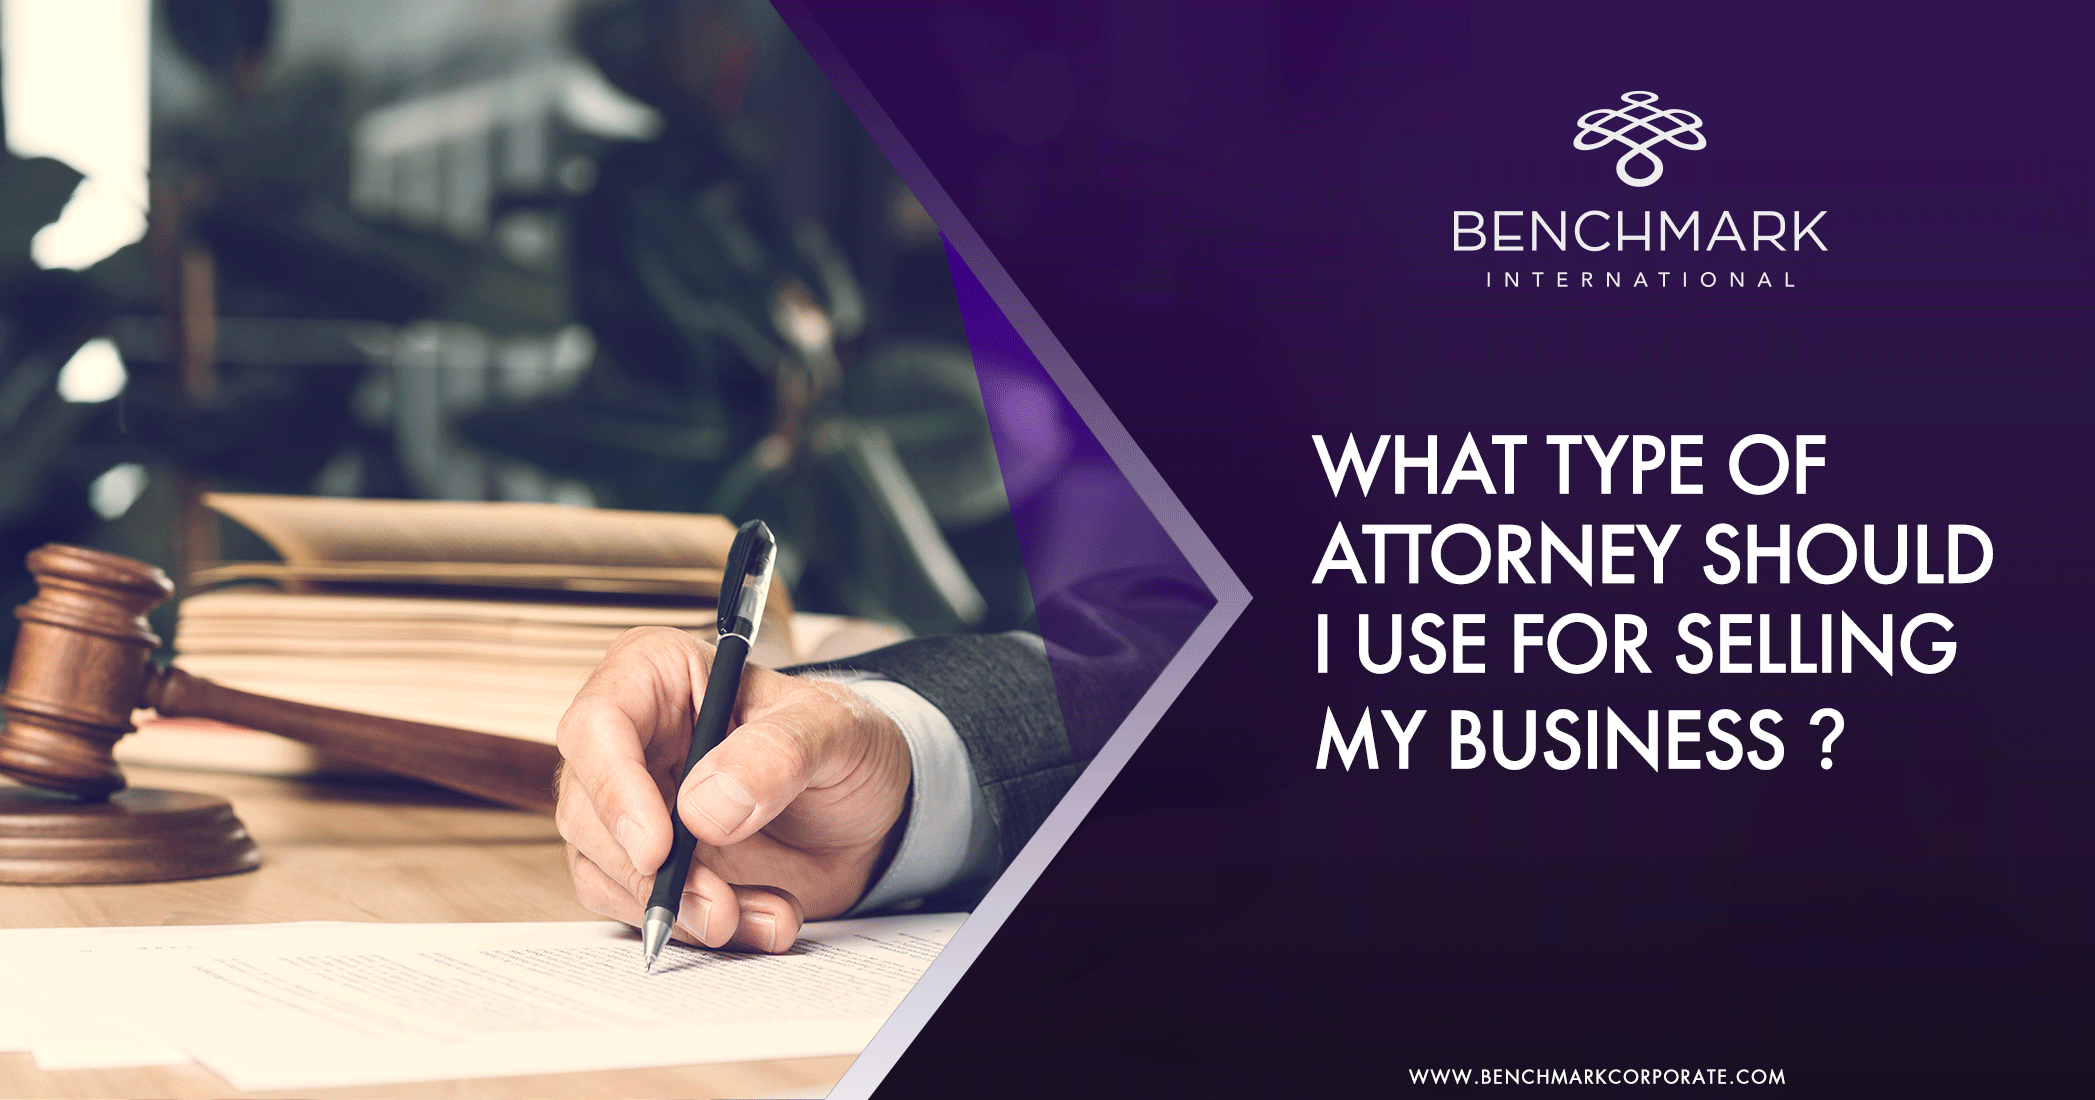 What type of attorney should I use for selling my business